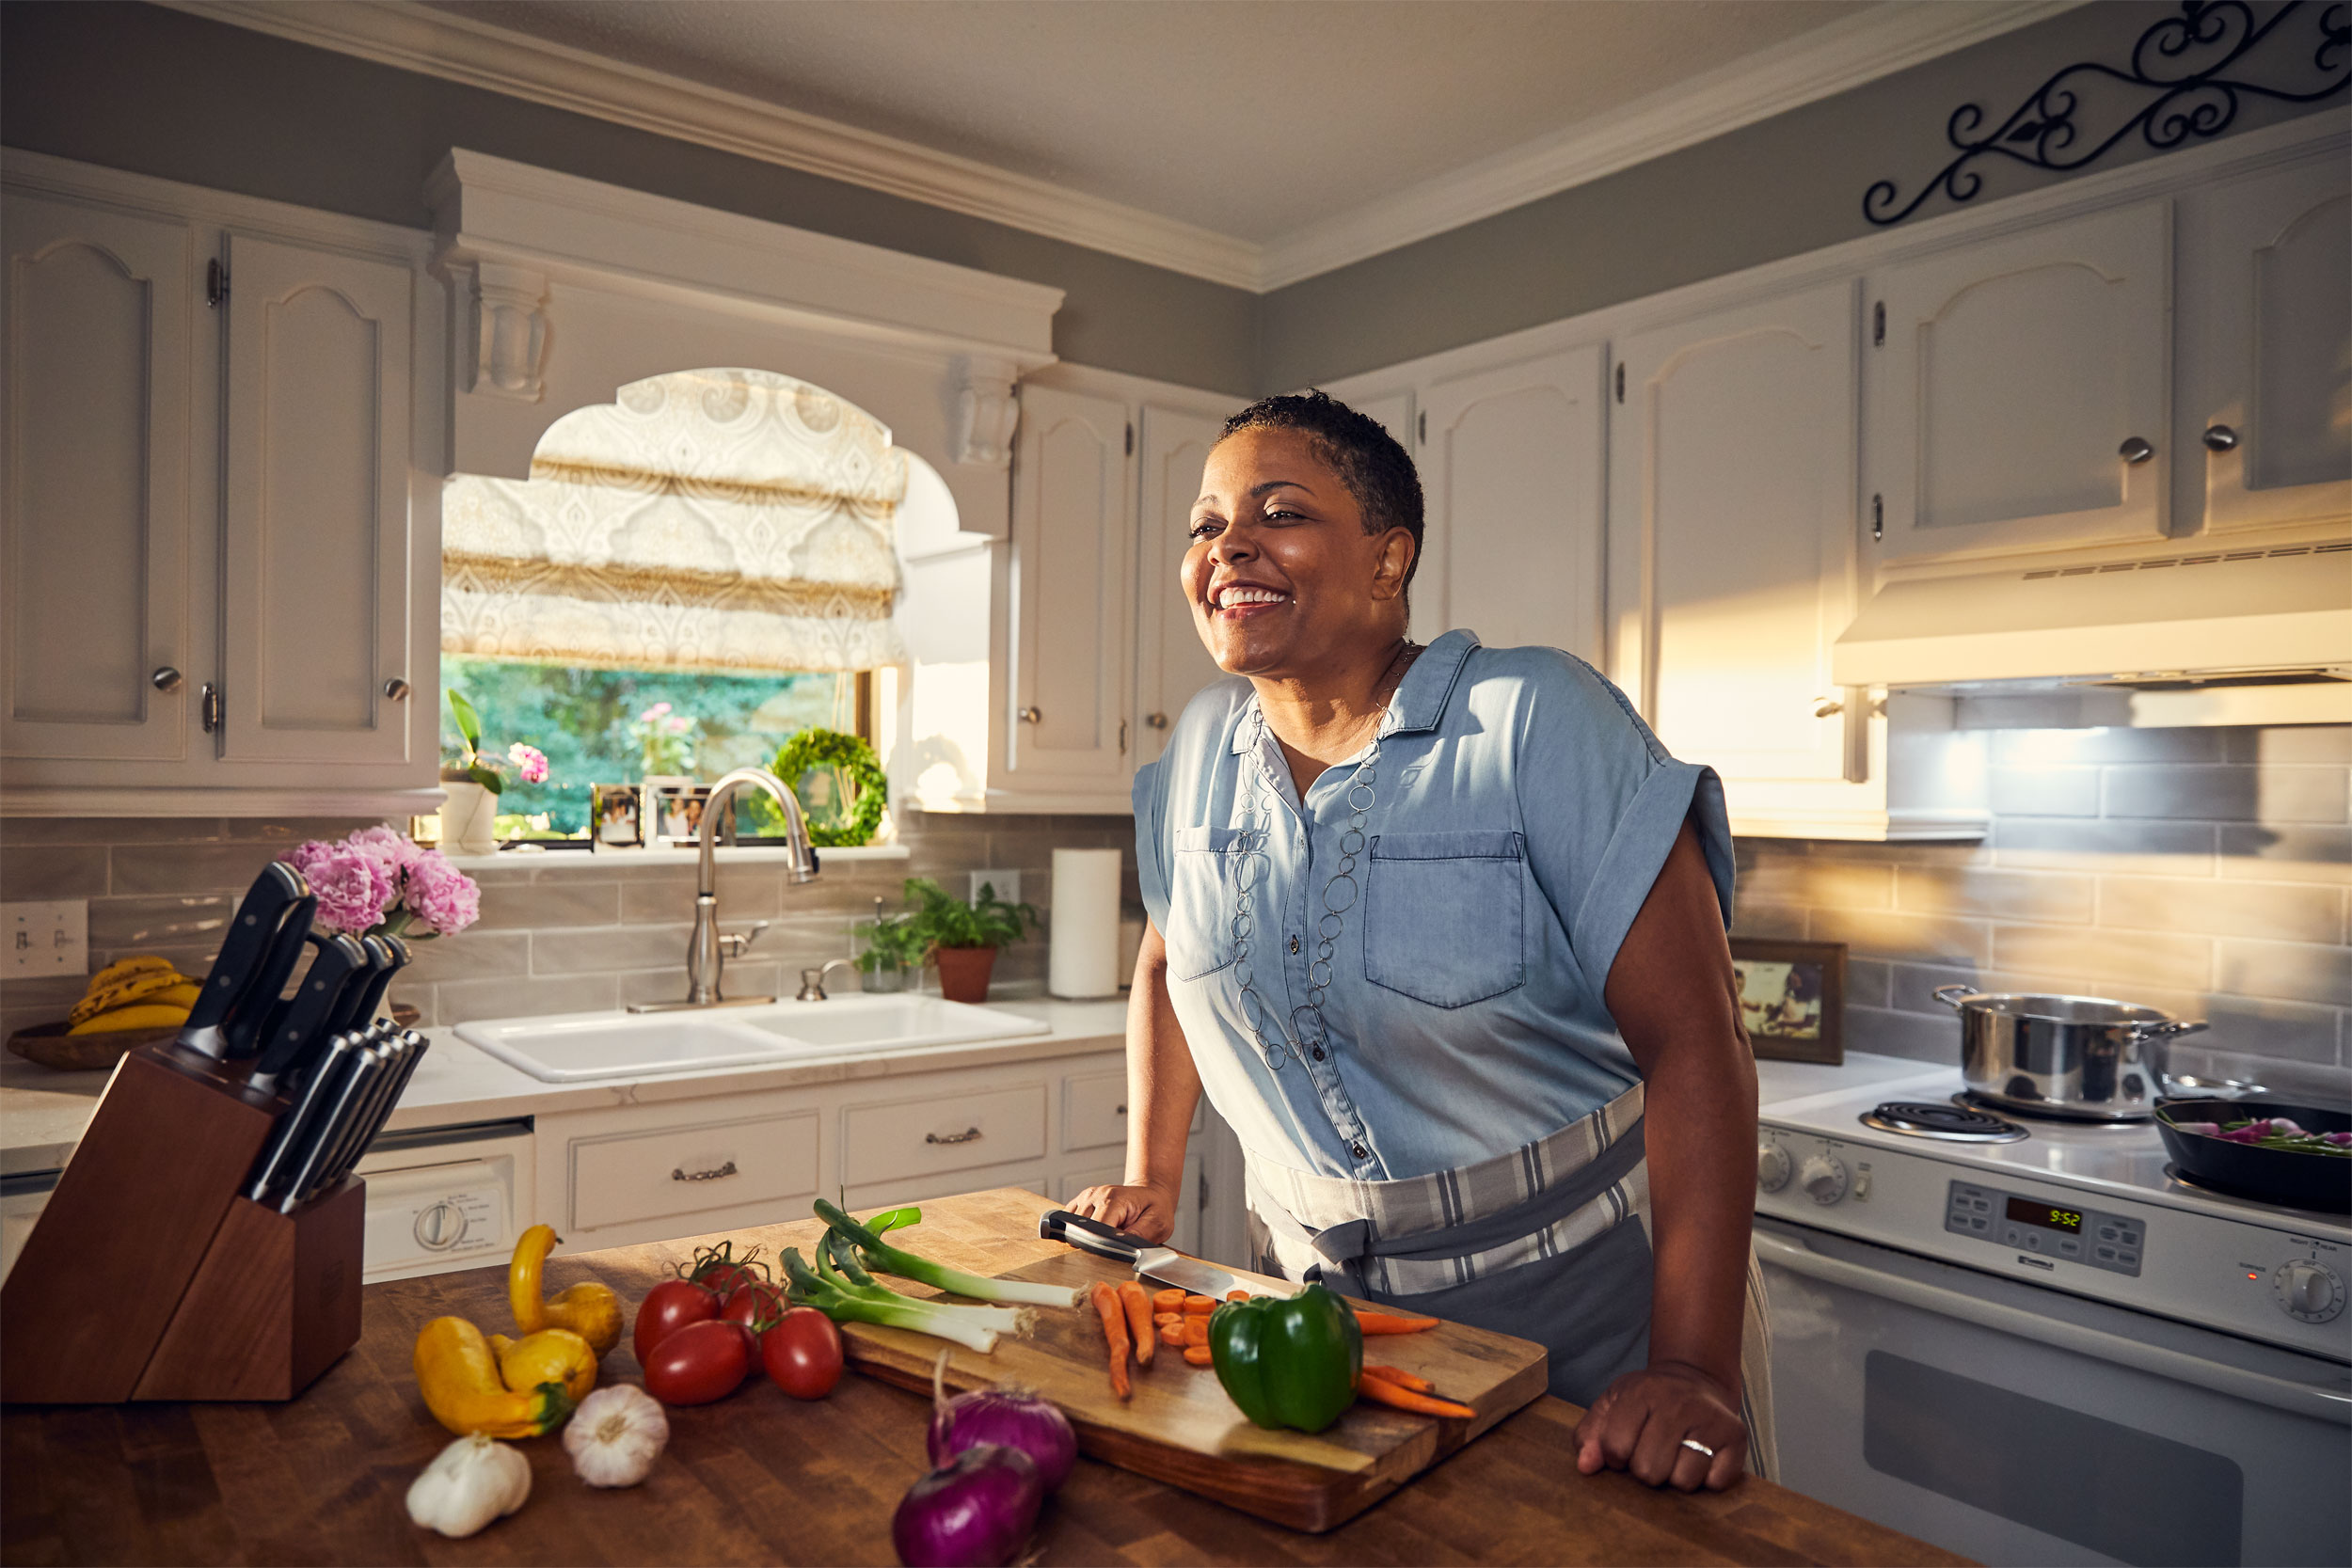 kitchen_cutting_vegetables_washington_dc_commercial_photography.JPG